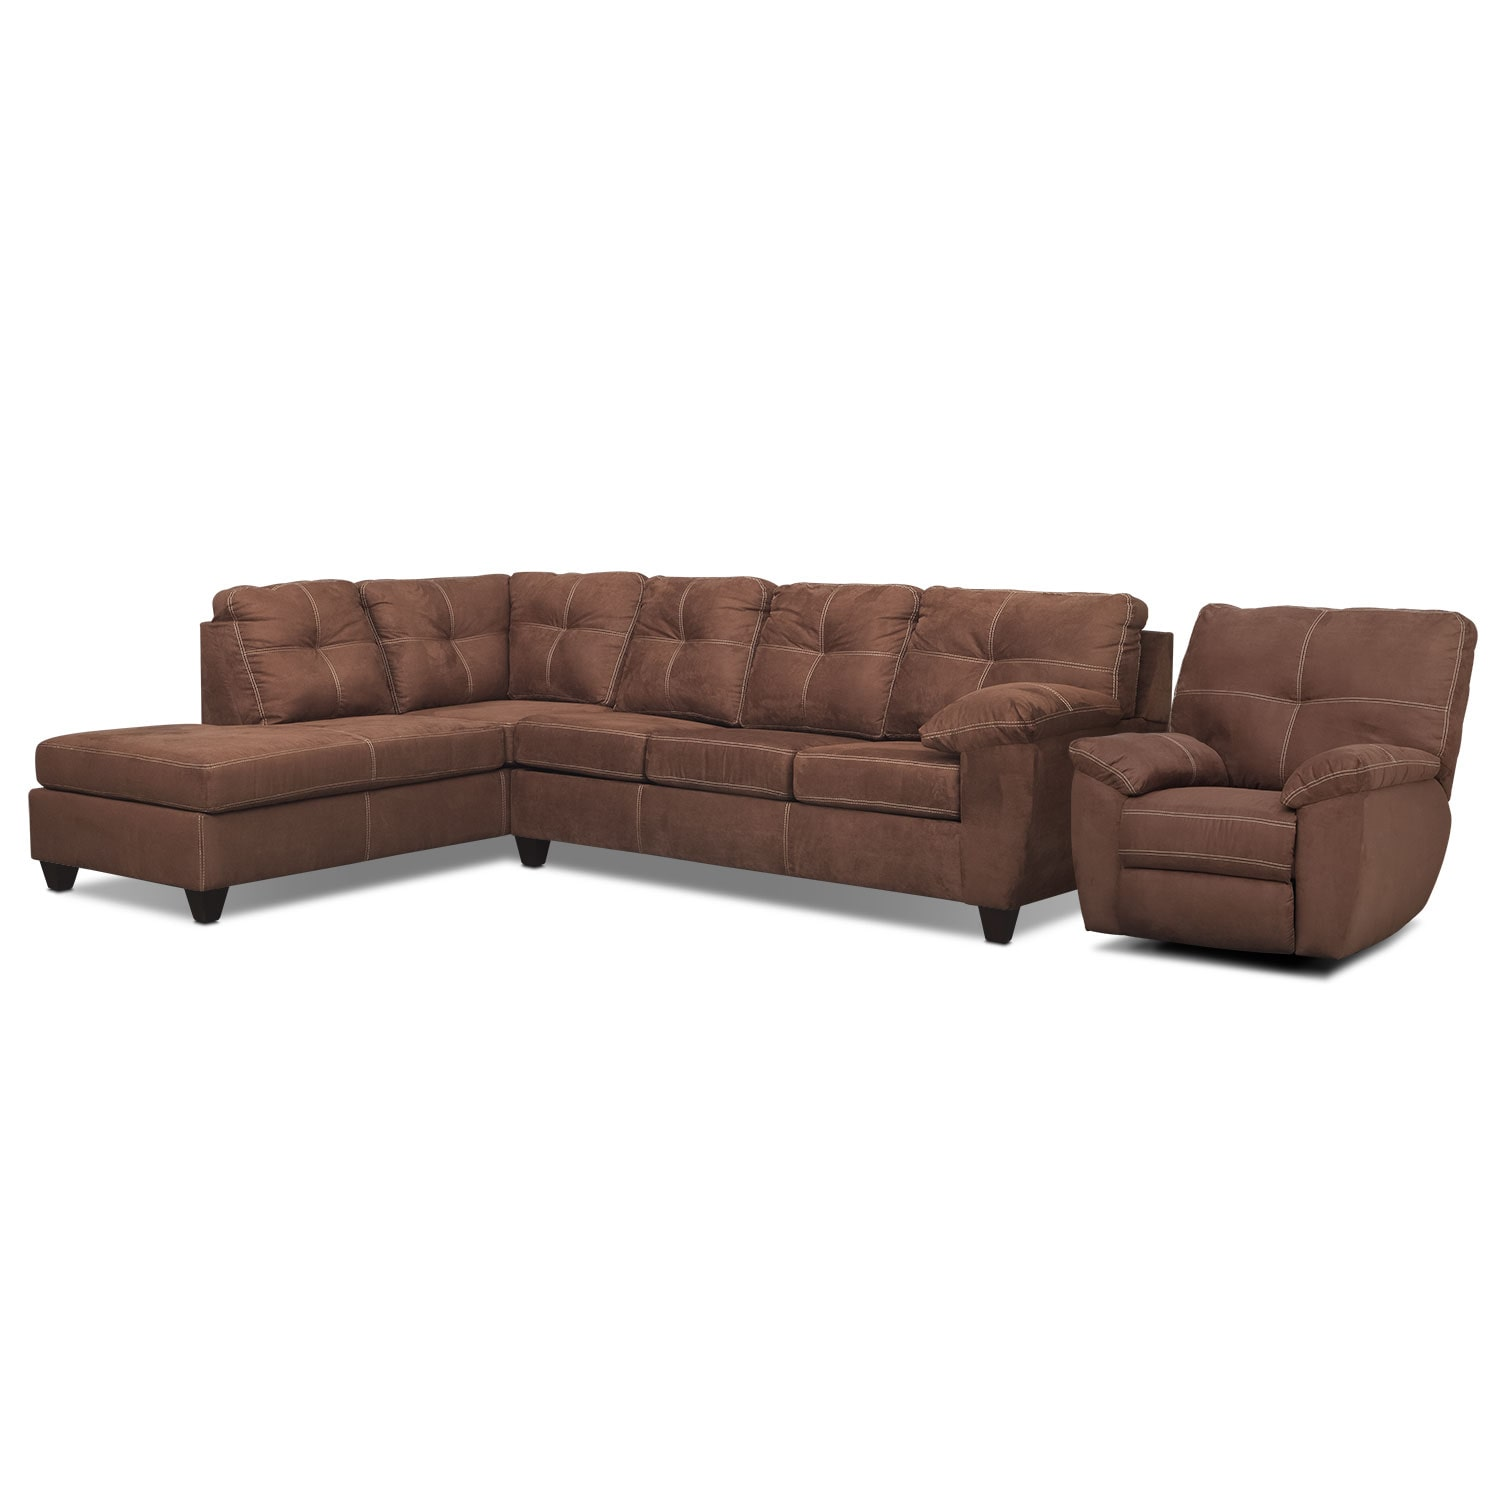 Rialto 2-Piece Sectional with Left-Facing Chaise and Glider Recliner Set - Coffee